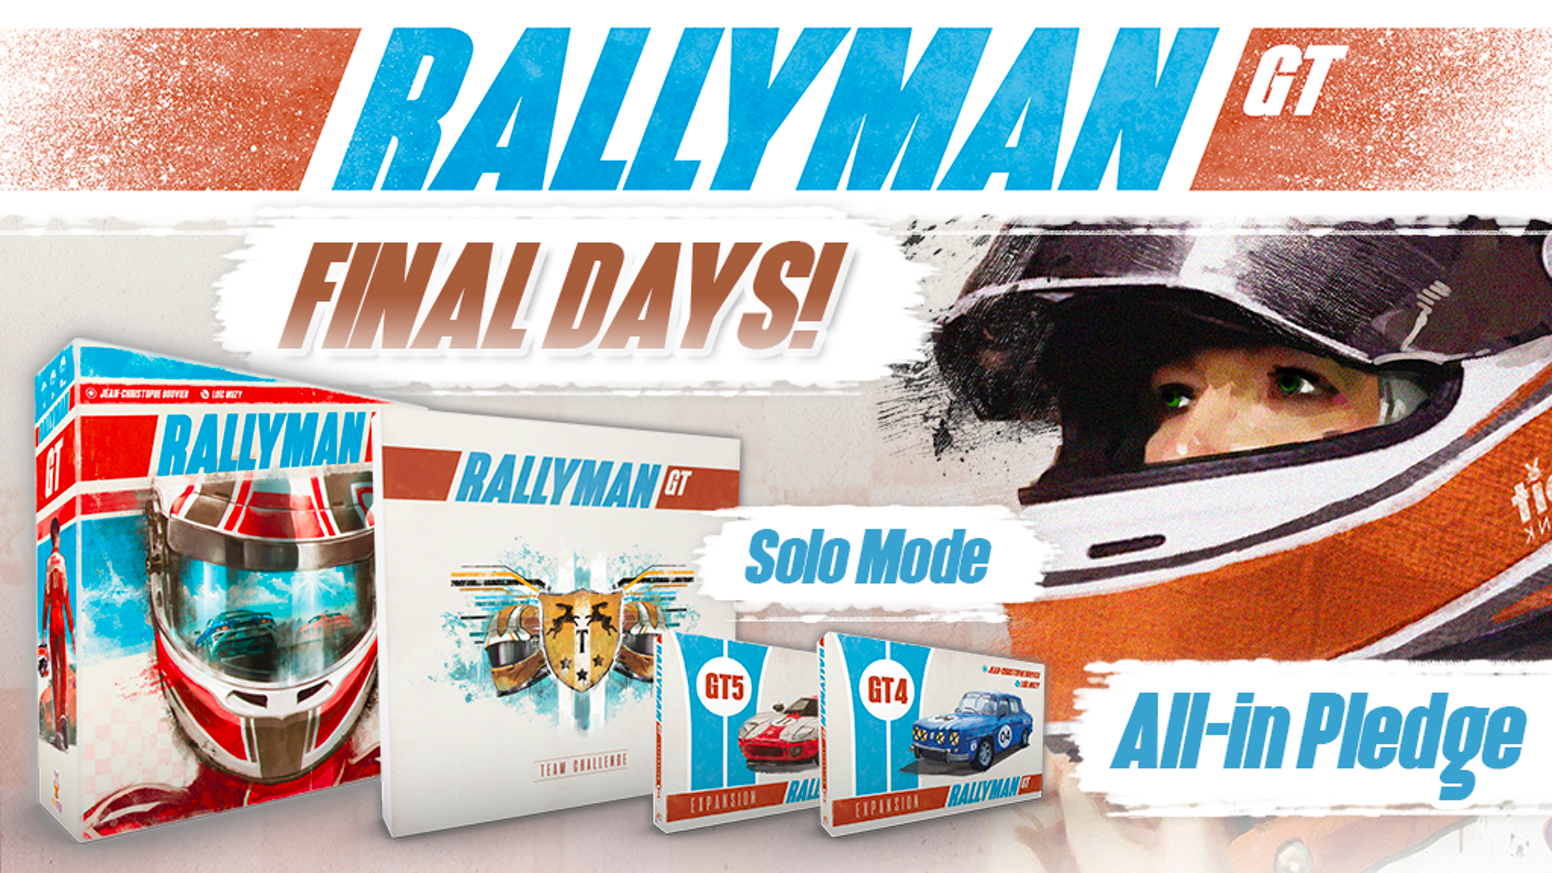 Rallyman GT is a fast-paced roll and move racing game that will have you pushing your luck to be the first over the finish line!